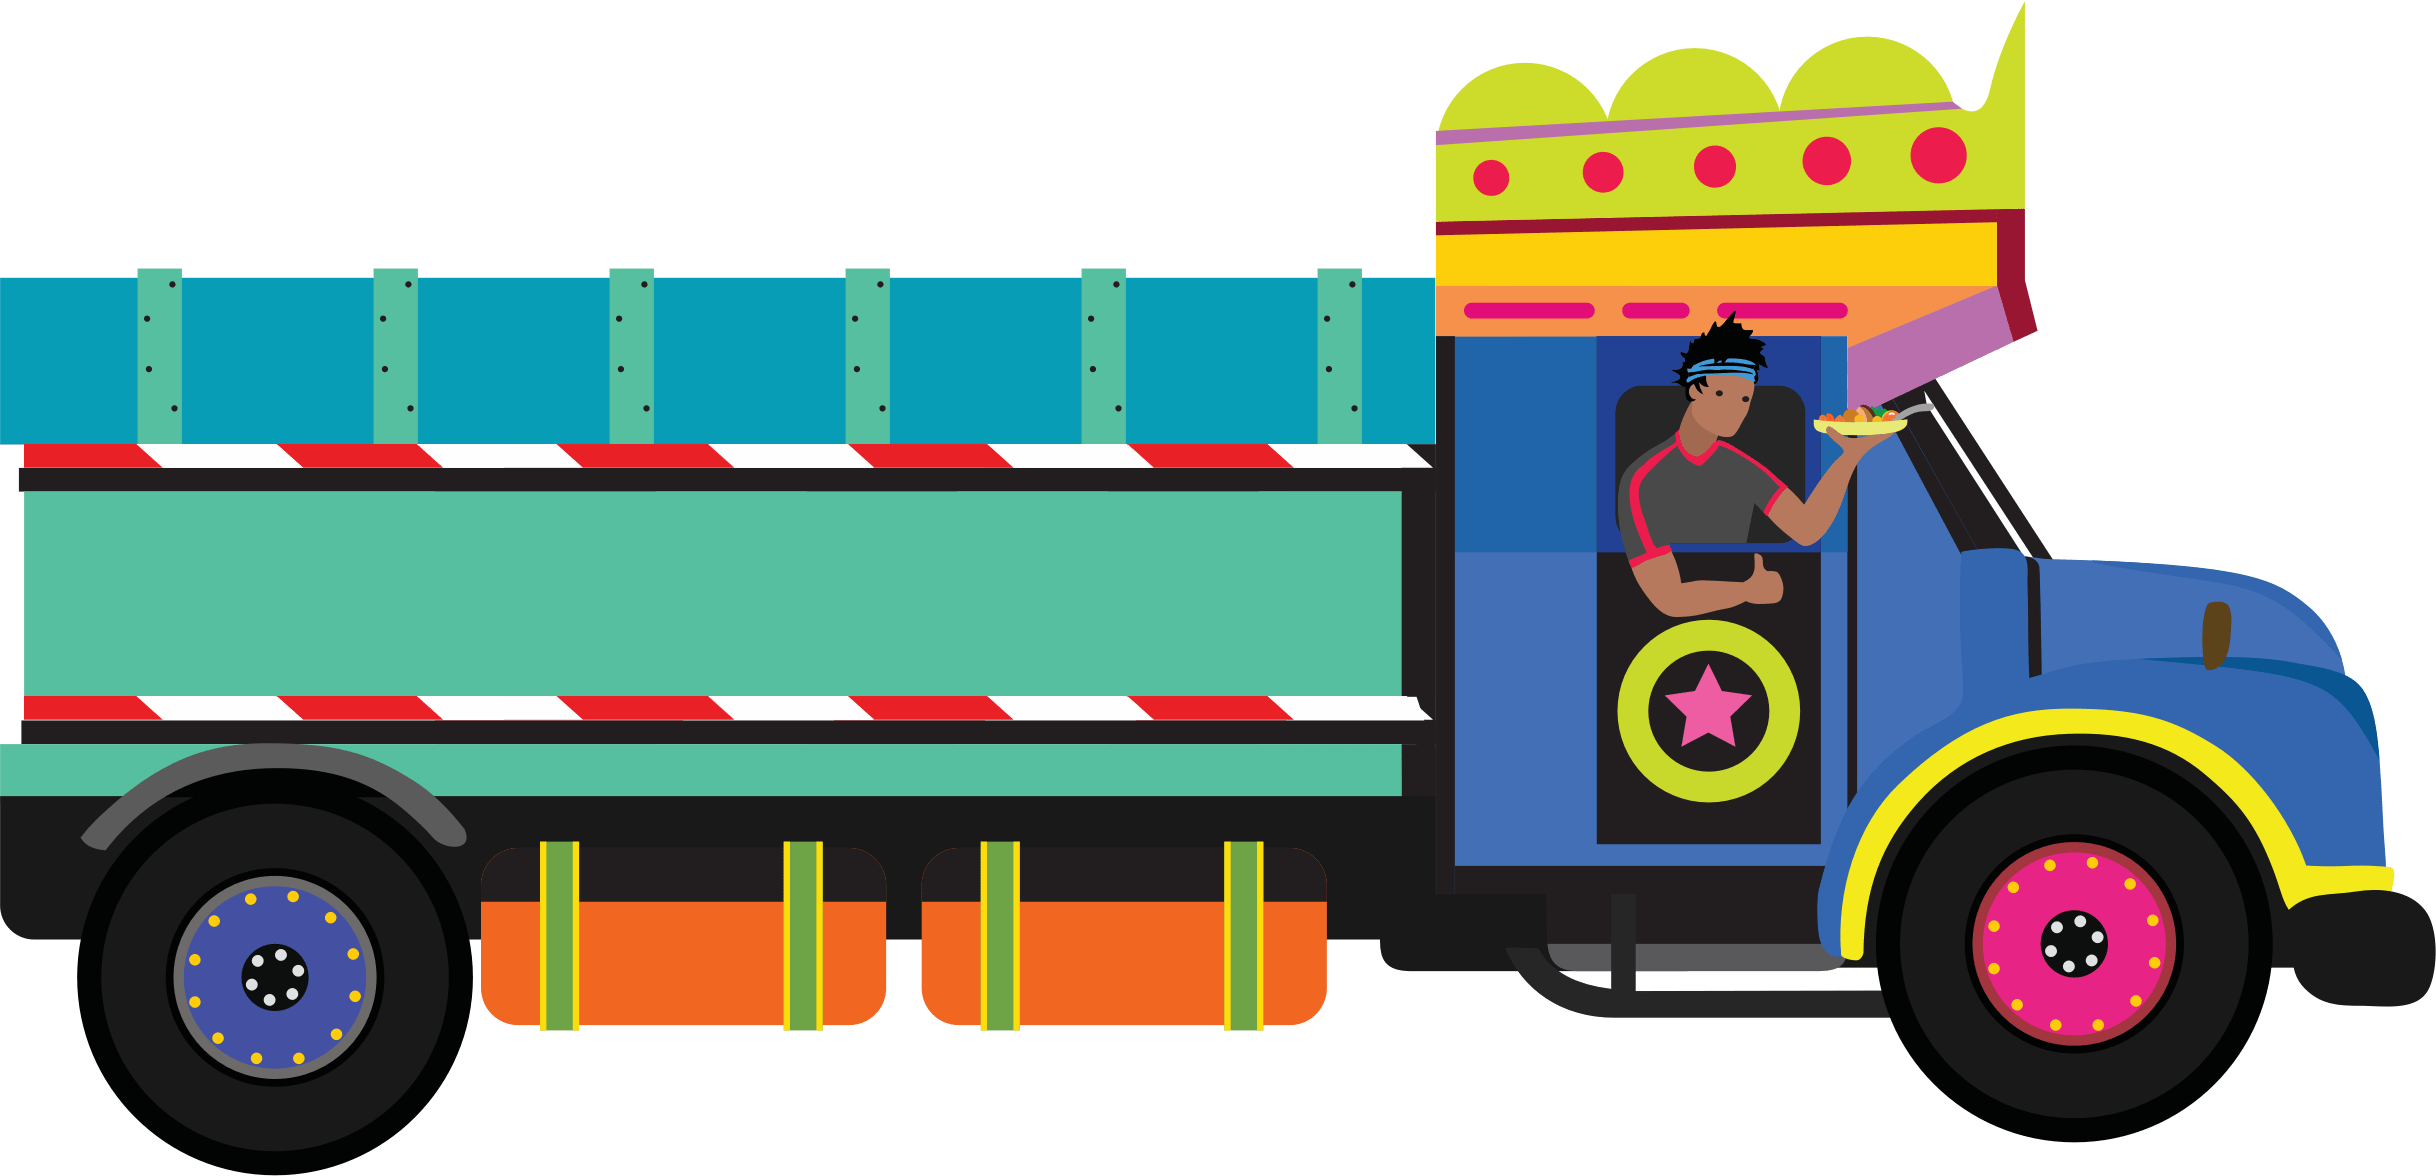 Chaat food cart illustration